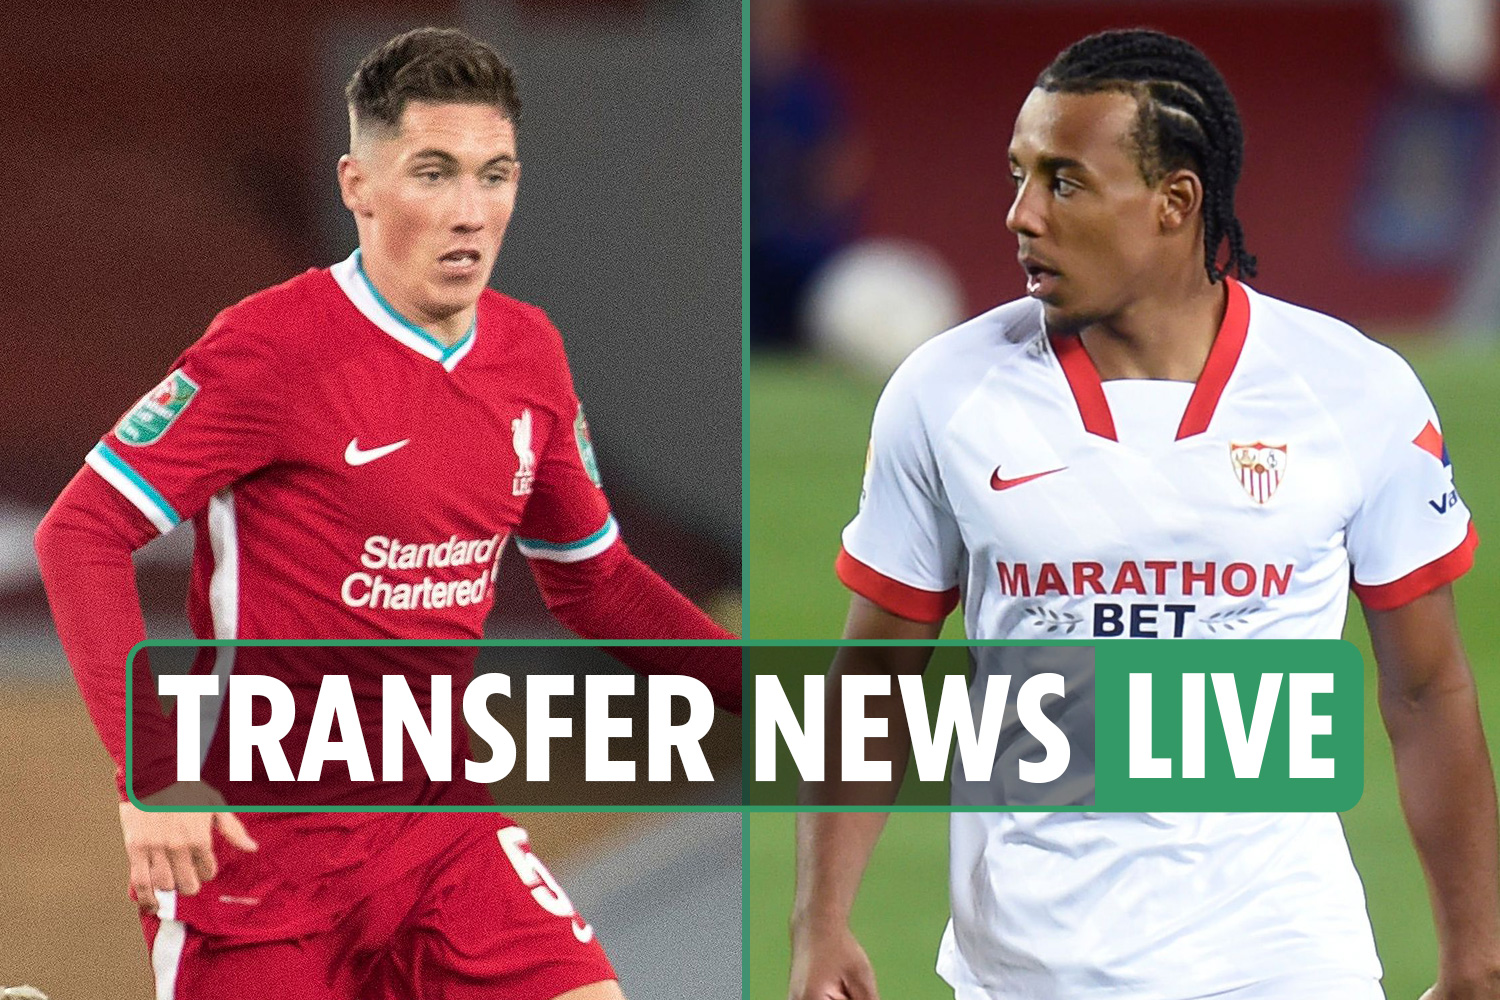 6pm Transfer news LIVE: Benrahma to West Ham COMPLETE, Wilson joins Cardiff on loan, Rodon to Spurs DONE DEAL